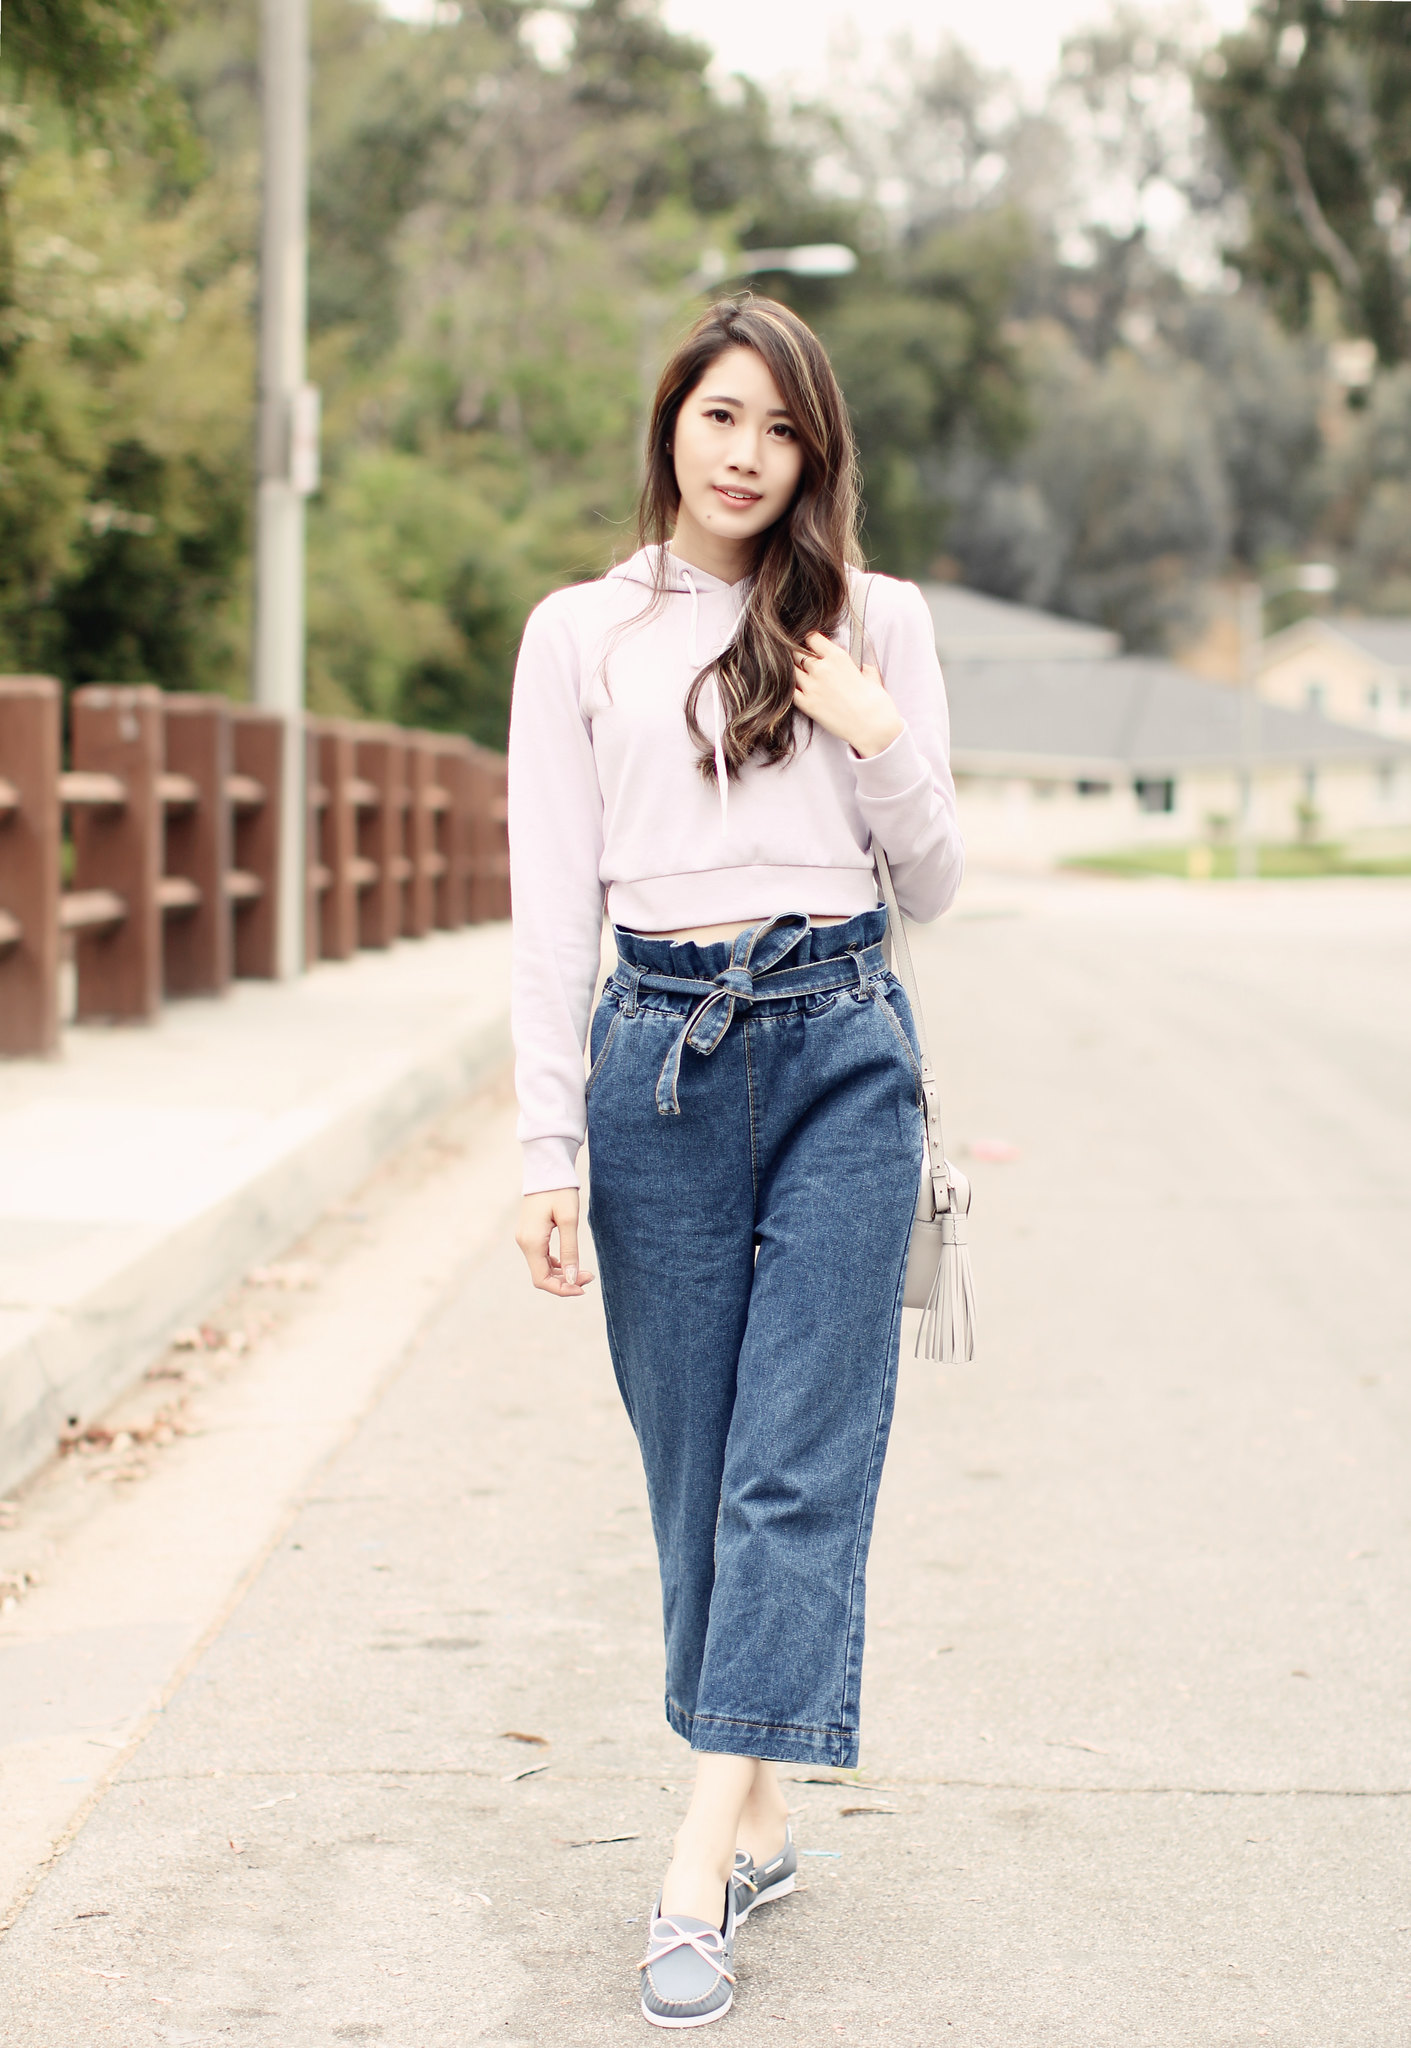 5063-ootd-fashion-style-outfitoftheday-wiwt-streetstyle-zara-f21xme-denim-thrifted-guess-koreanfashion-lookbook-elizabeeetht-clothestoyouuu